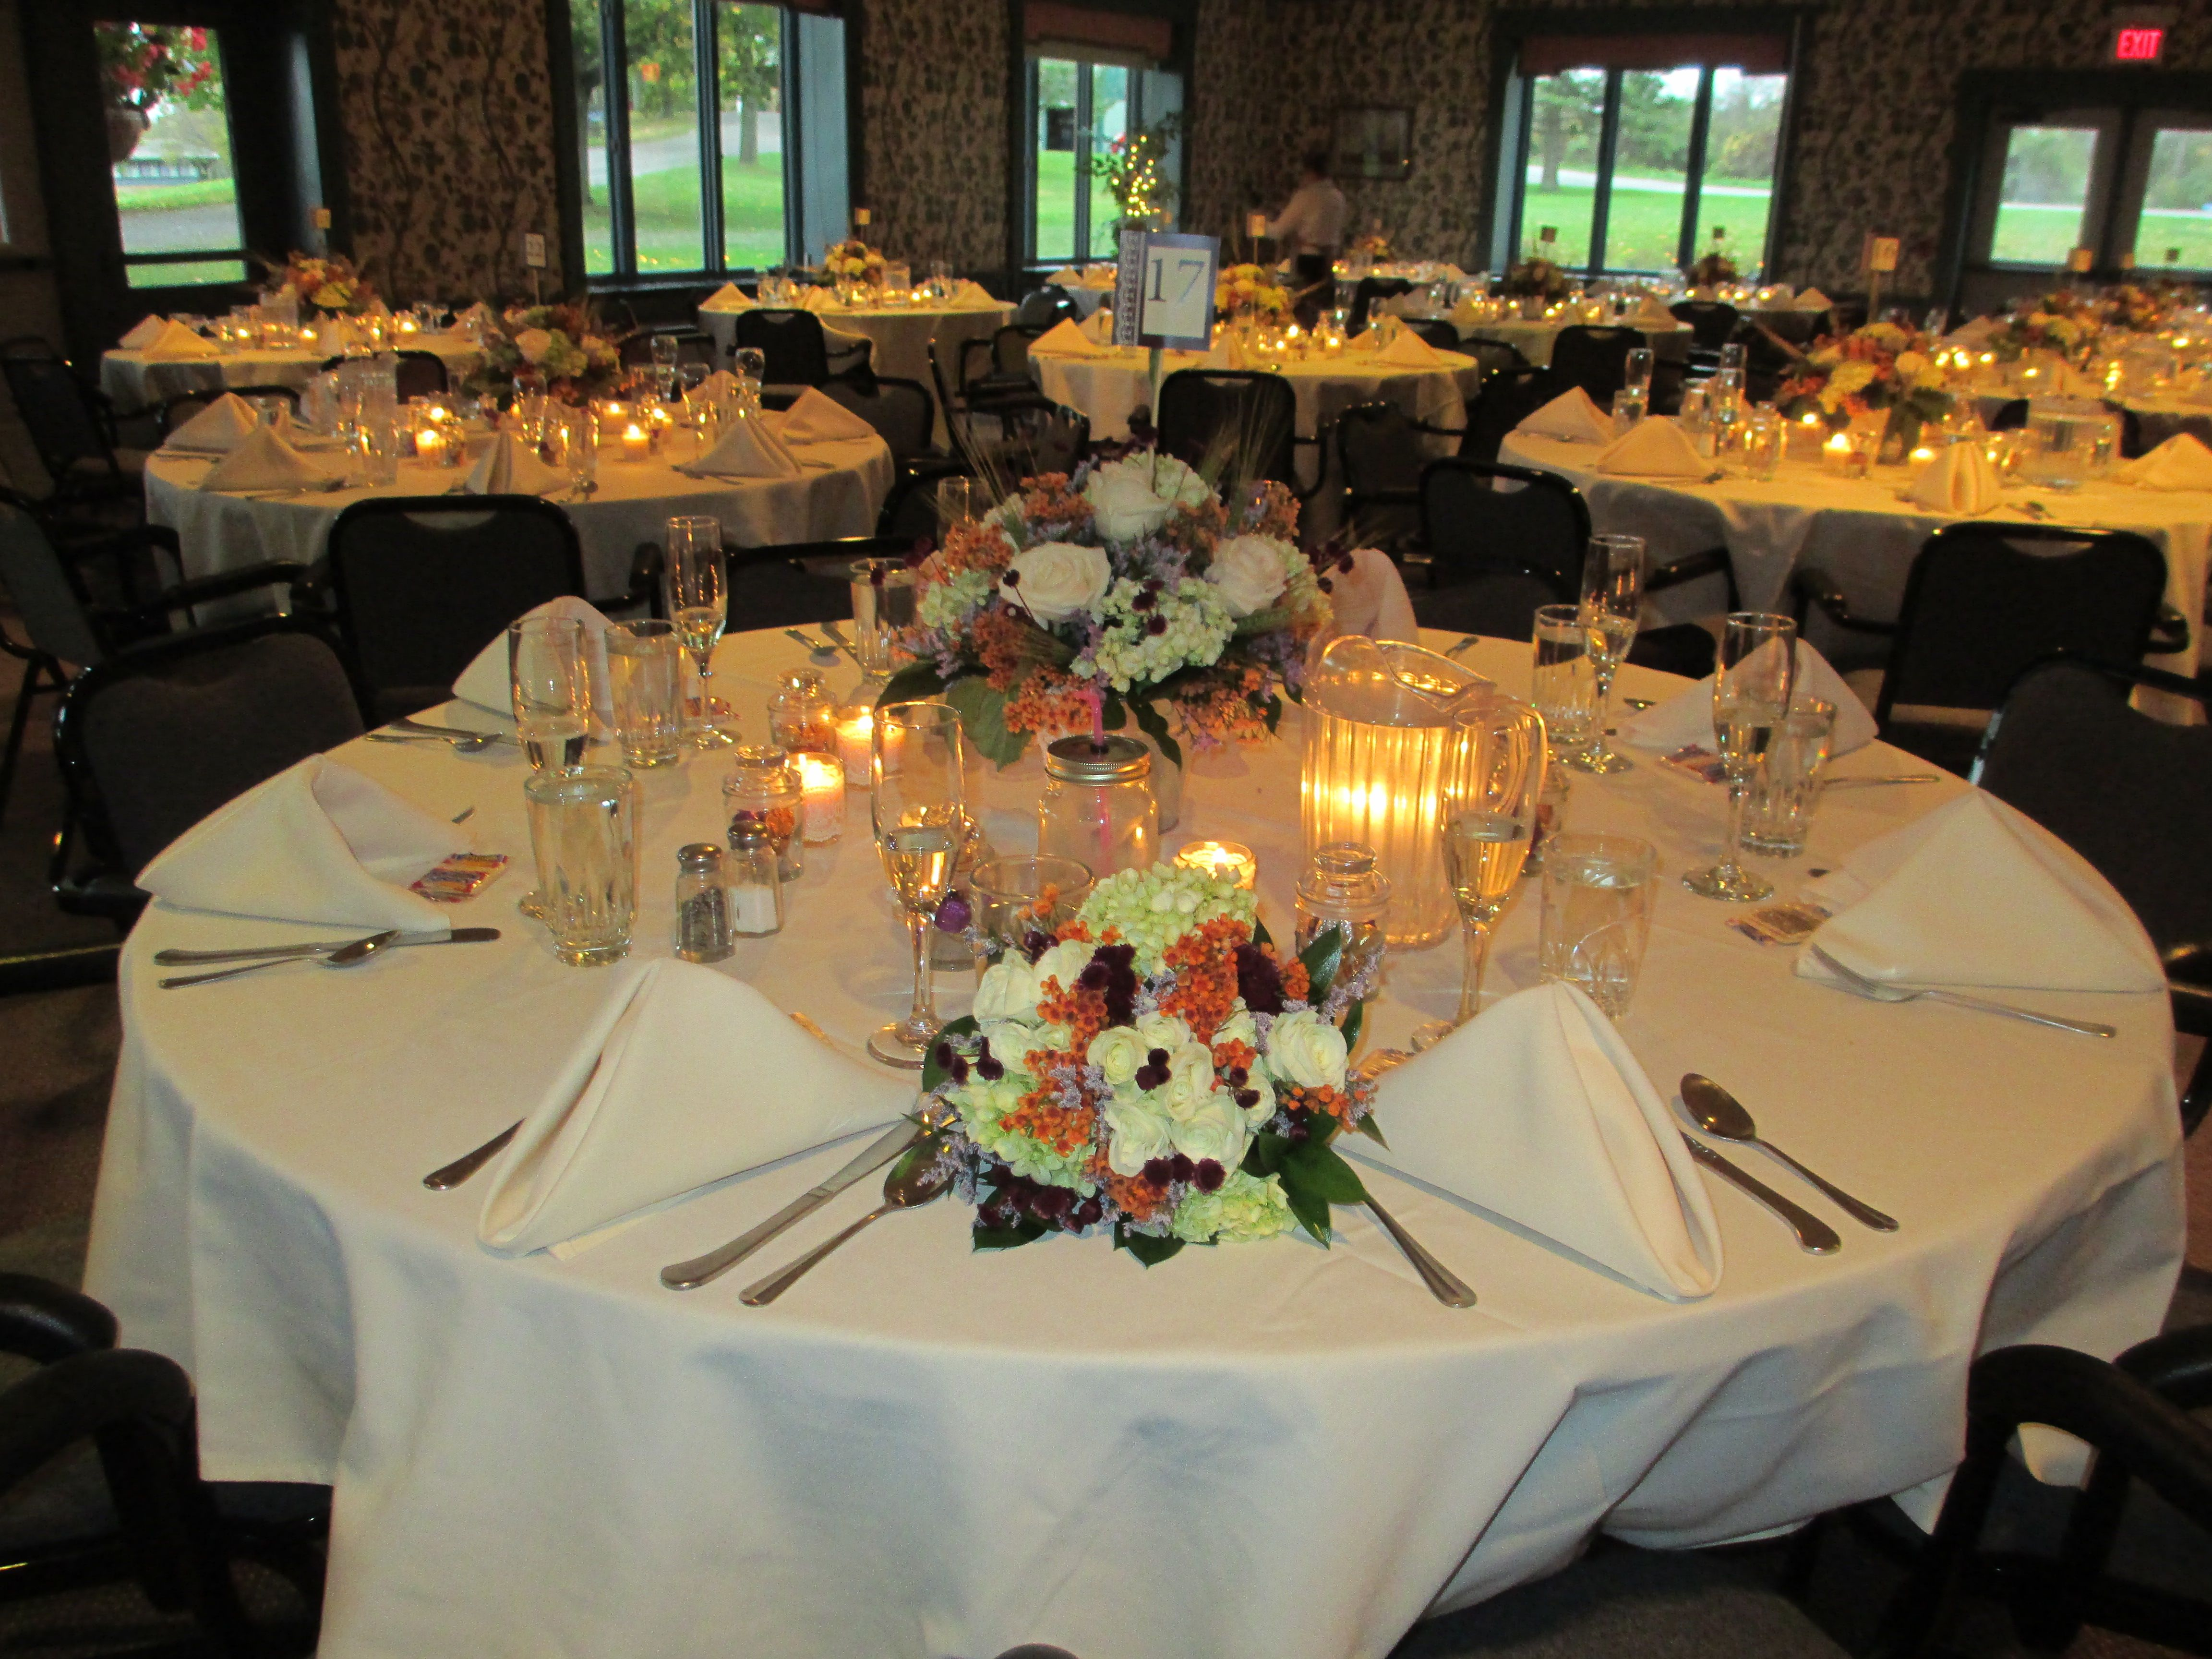 A Pretty Table For Wedding Reception In The Meeting Center At Genesee Country Village